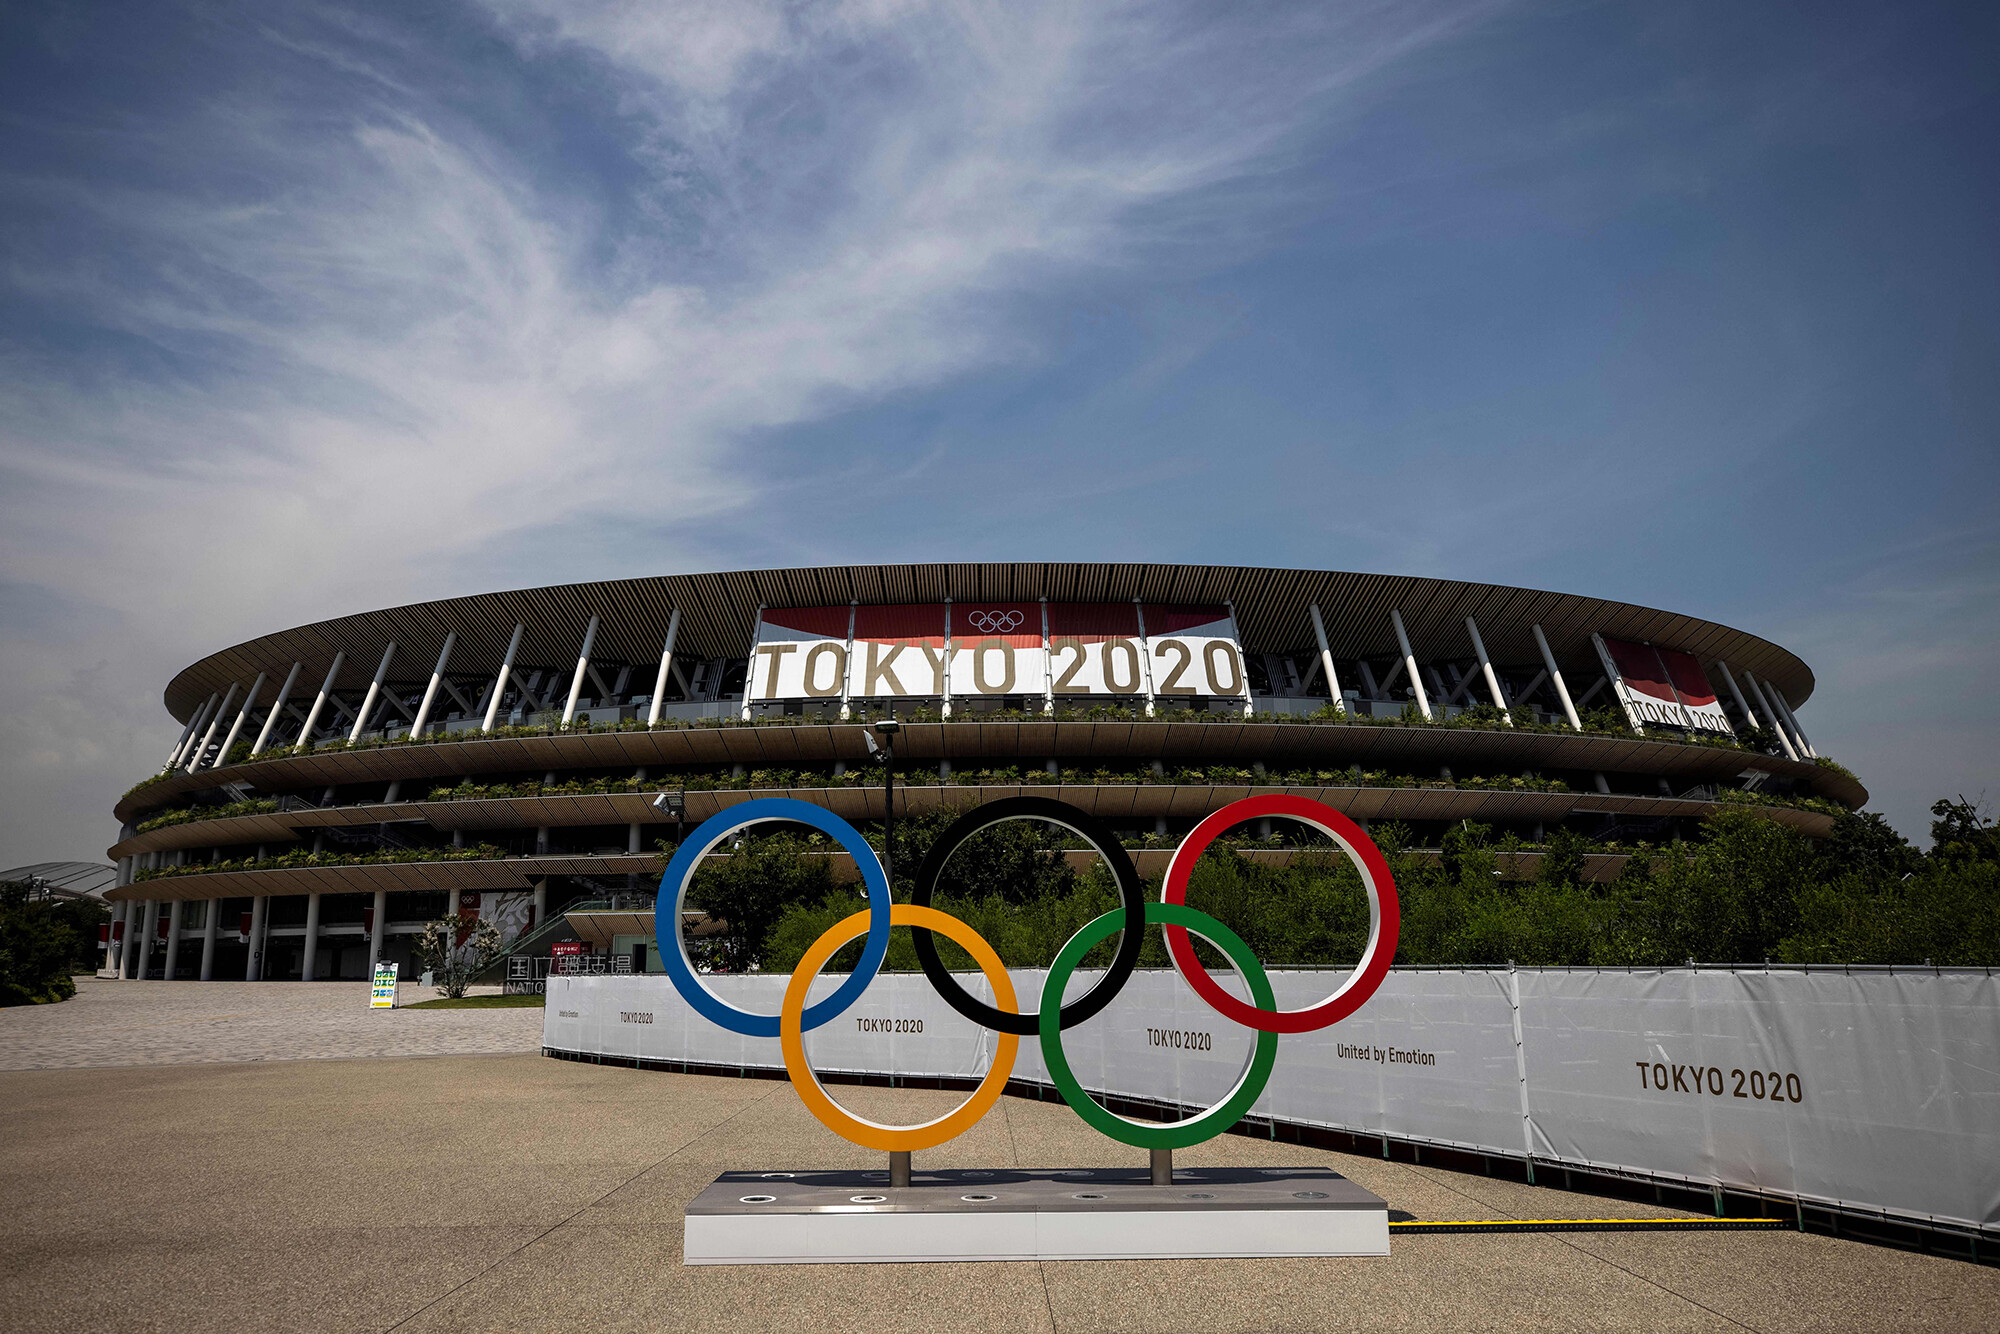 This may be the lowest-rated Olympics ever. NBC shouldn't sweat it